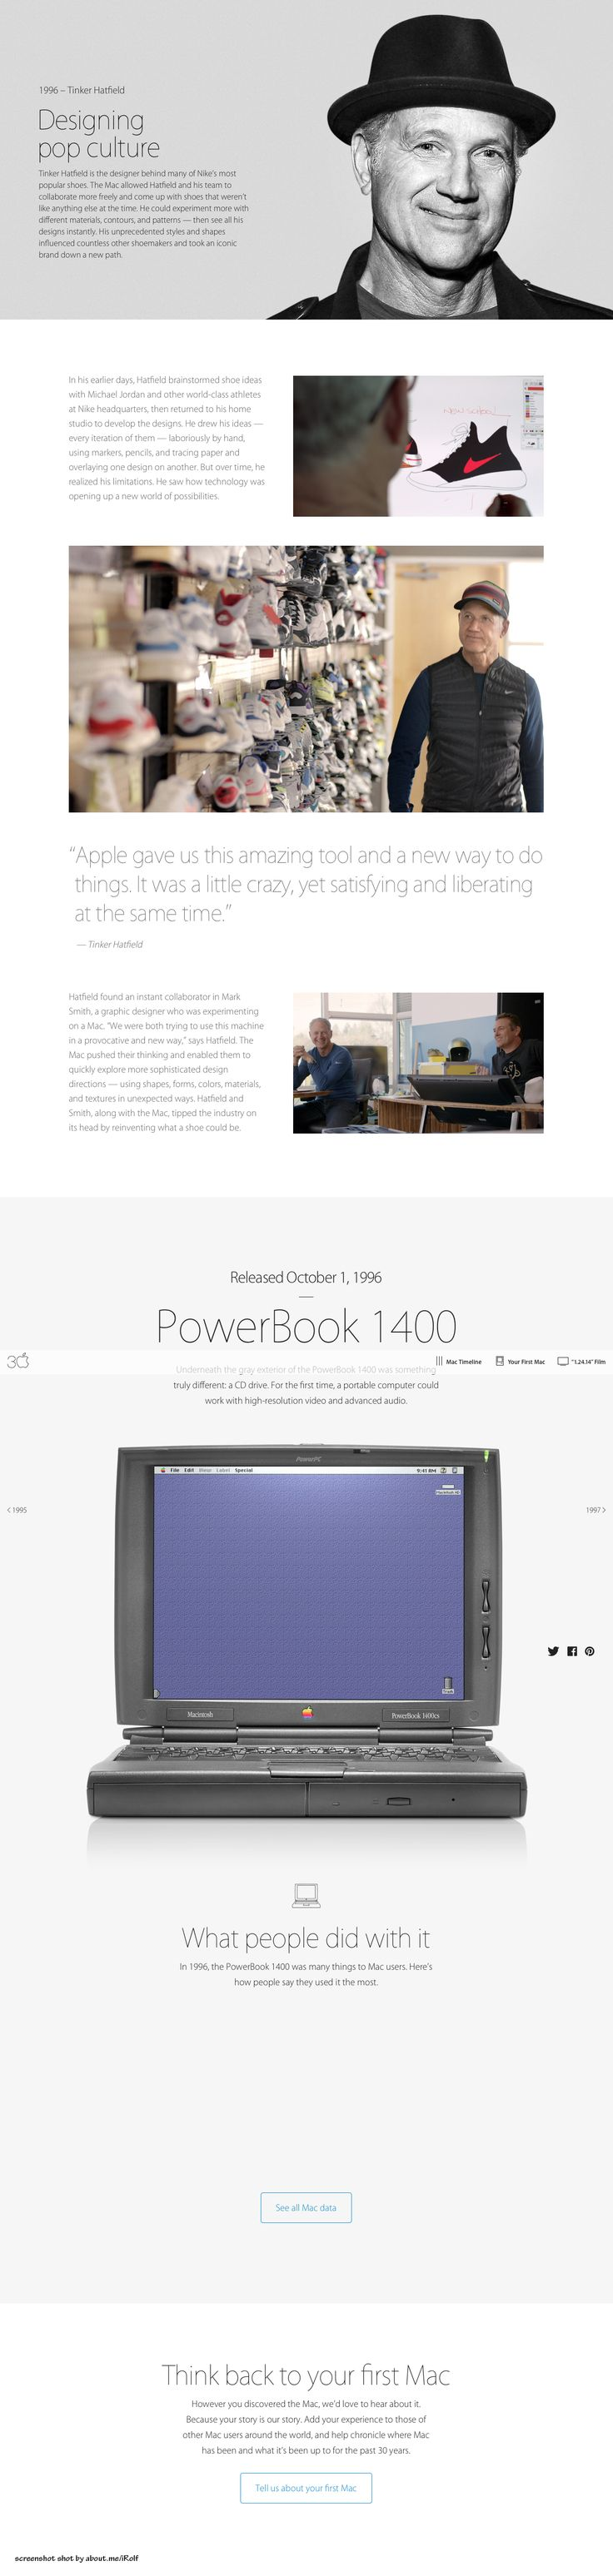 1000 Images About Apple On Pinterest